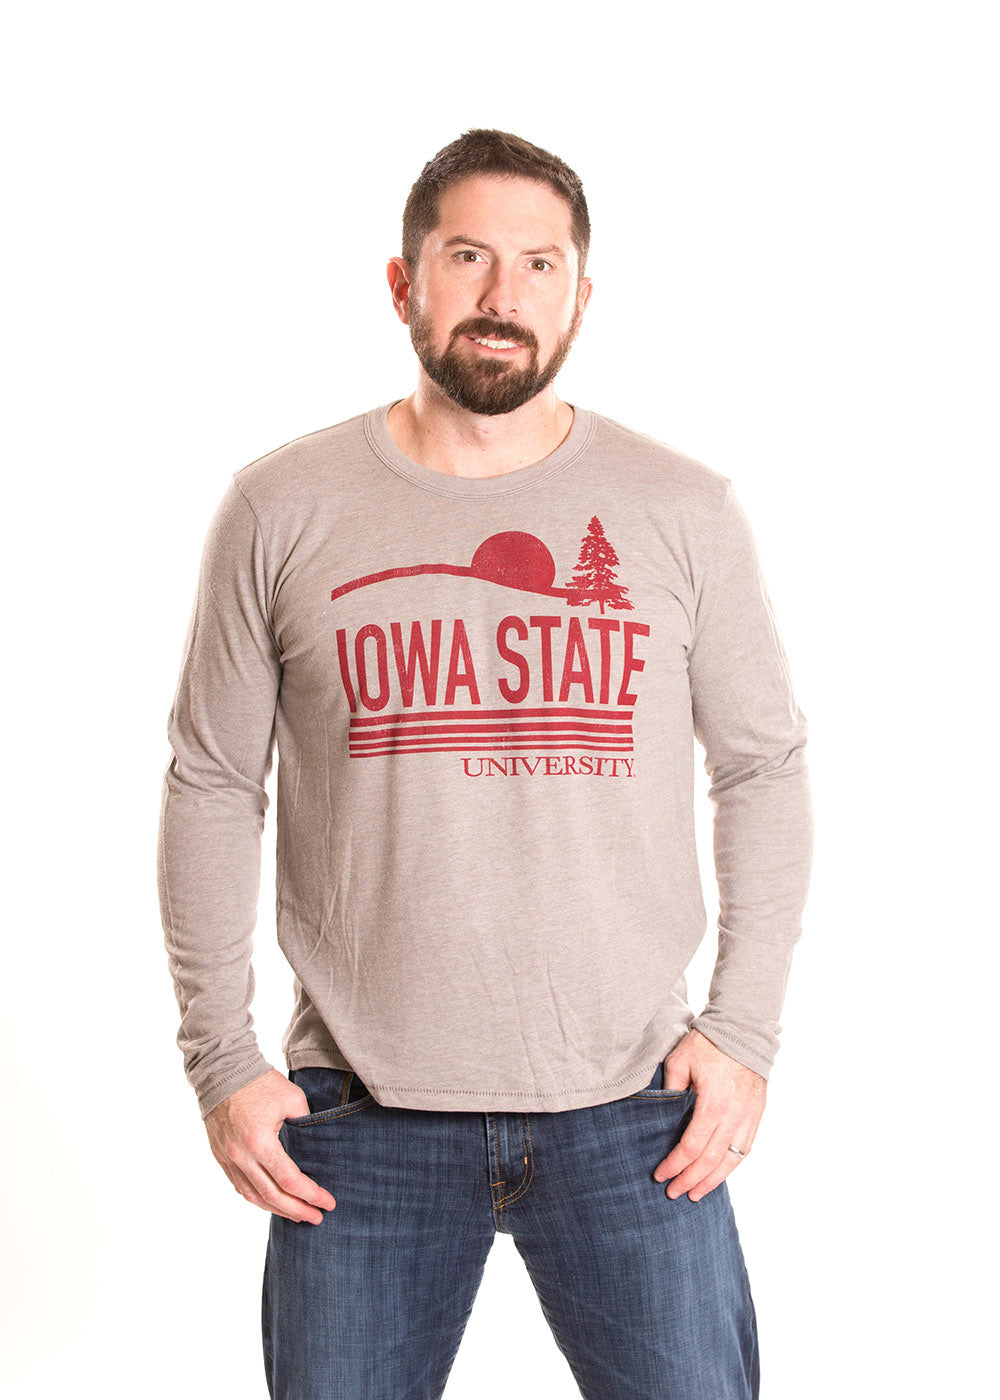 IOWA STATE UNIVERSITY Cyclones Men's Long Sleeve Tee